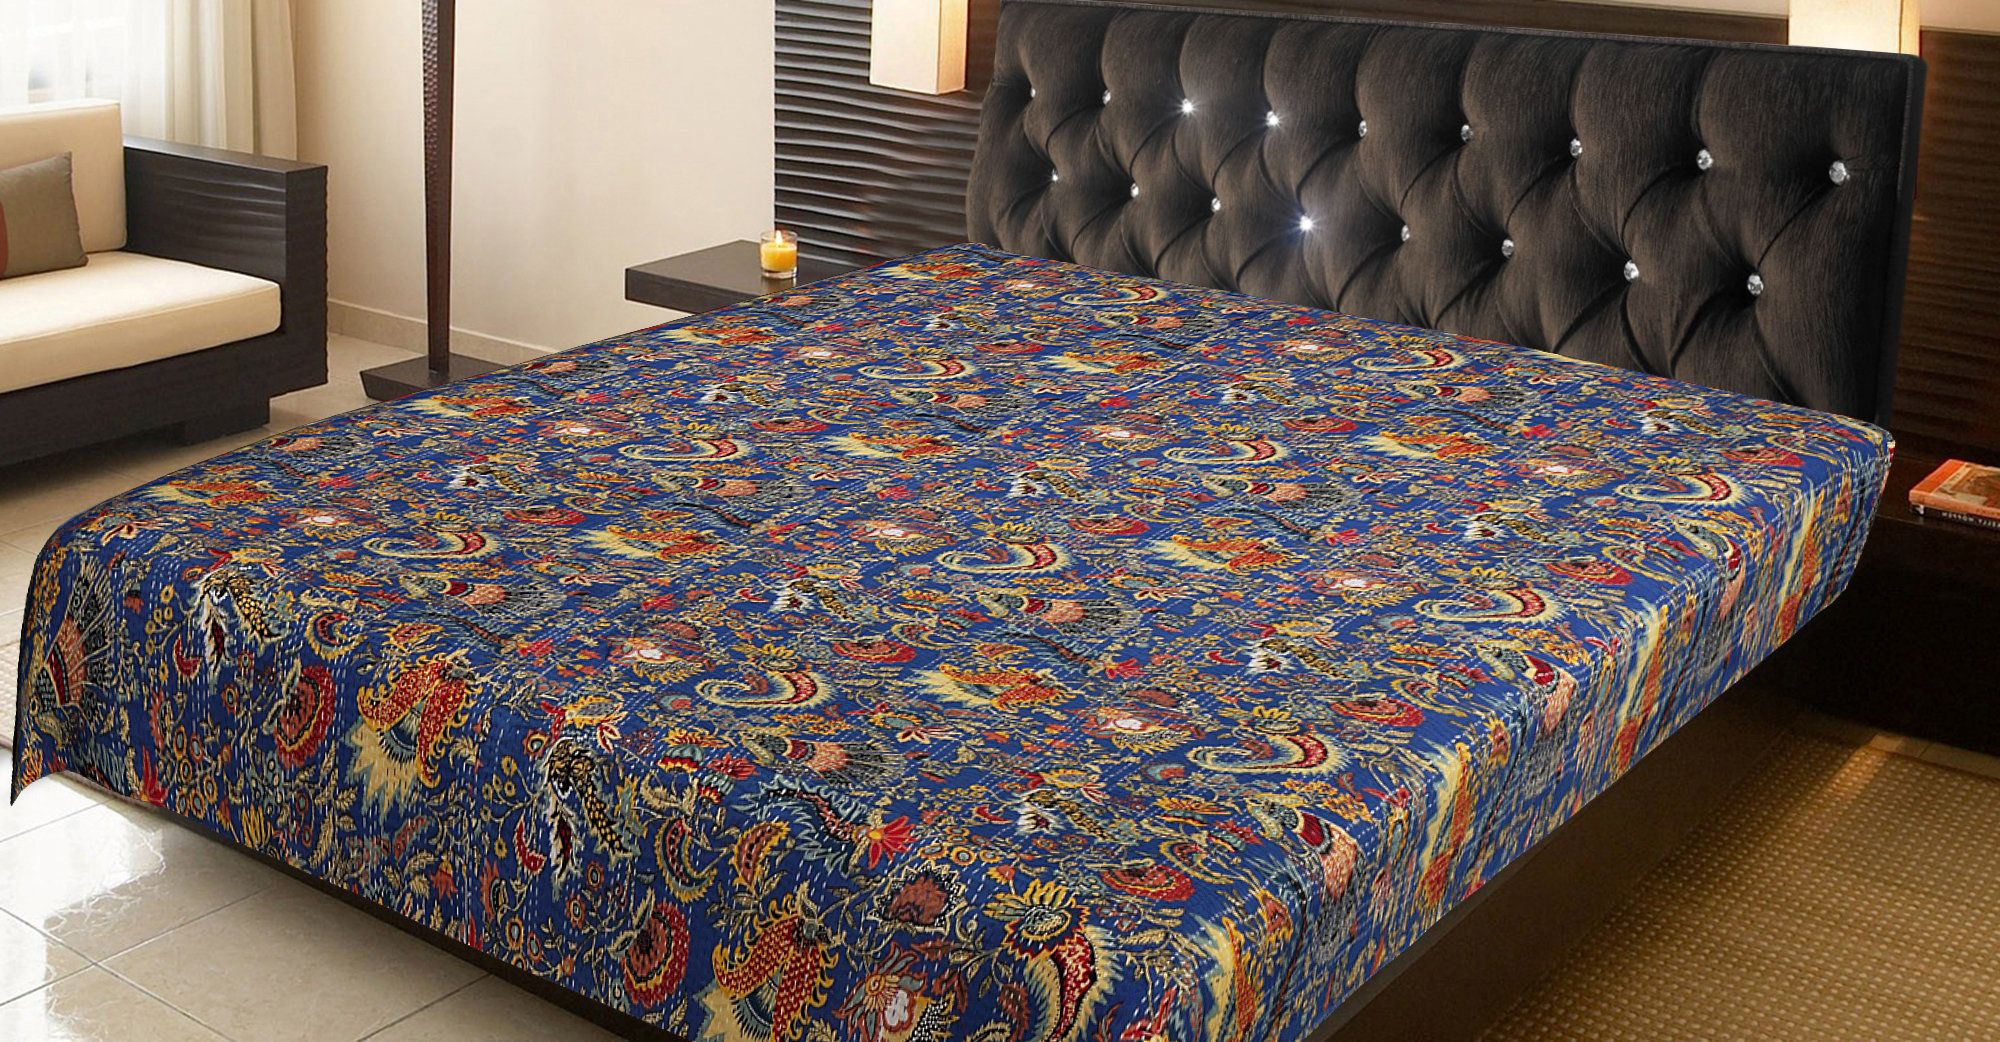 This Beautiful Quilt Blanket Is Made By Women Artisans In Etsy In 2020 Kantha Quilt Queen Beautiful Quilts Quilt Blanket